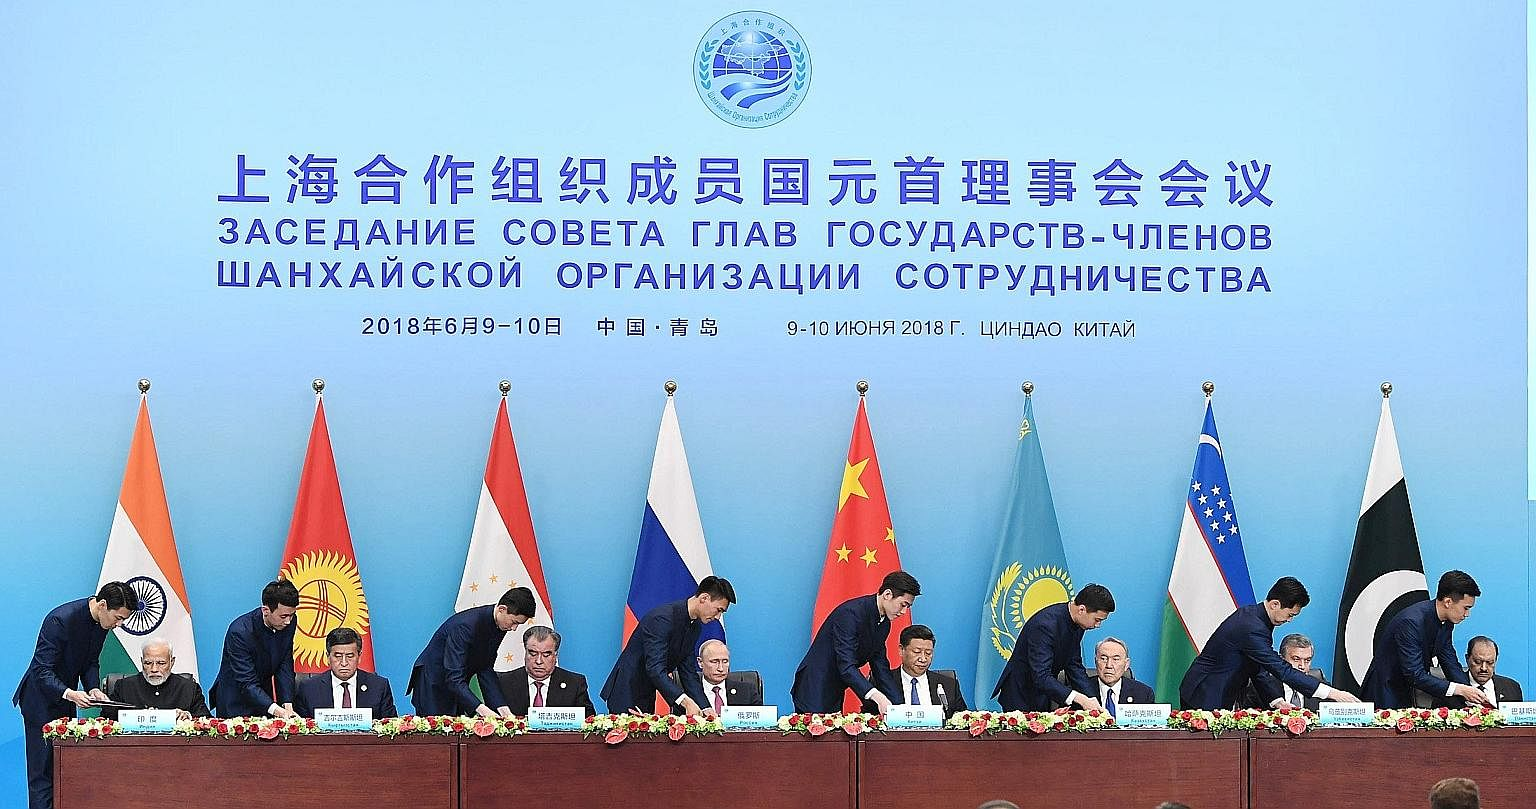 "Leaders of the eight countries under the Shanghai Cooperation Organisation at a signing ceremony over the weekend. The China Daily newspaper said the summit was a good example of multilateral cooperation, offering a ""new vision"" for a more just and e"